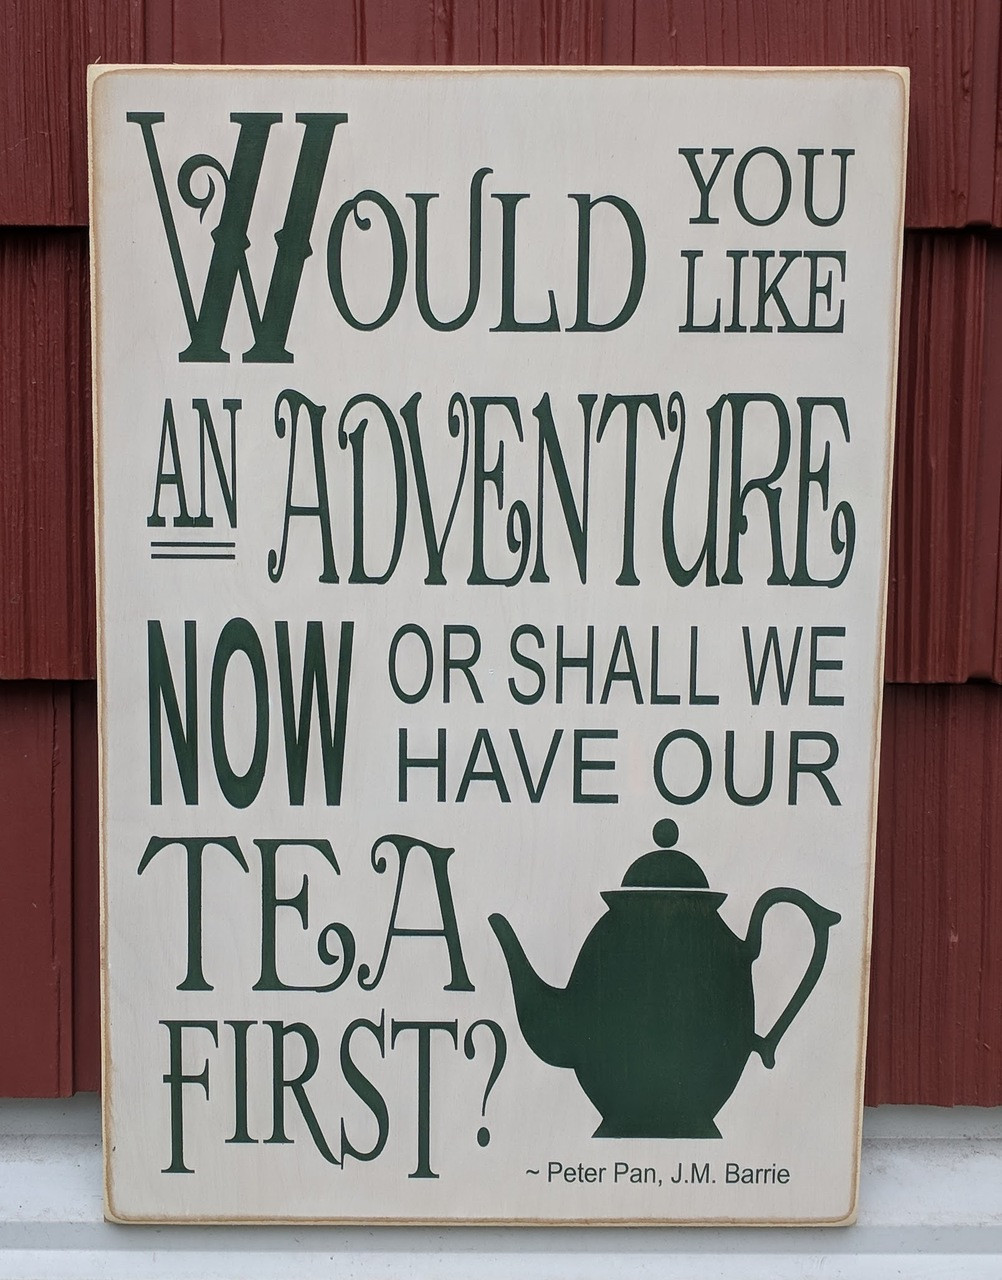 Would you like an adventure now or shall we have our tea first - wood sign